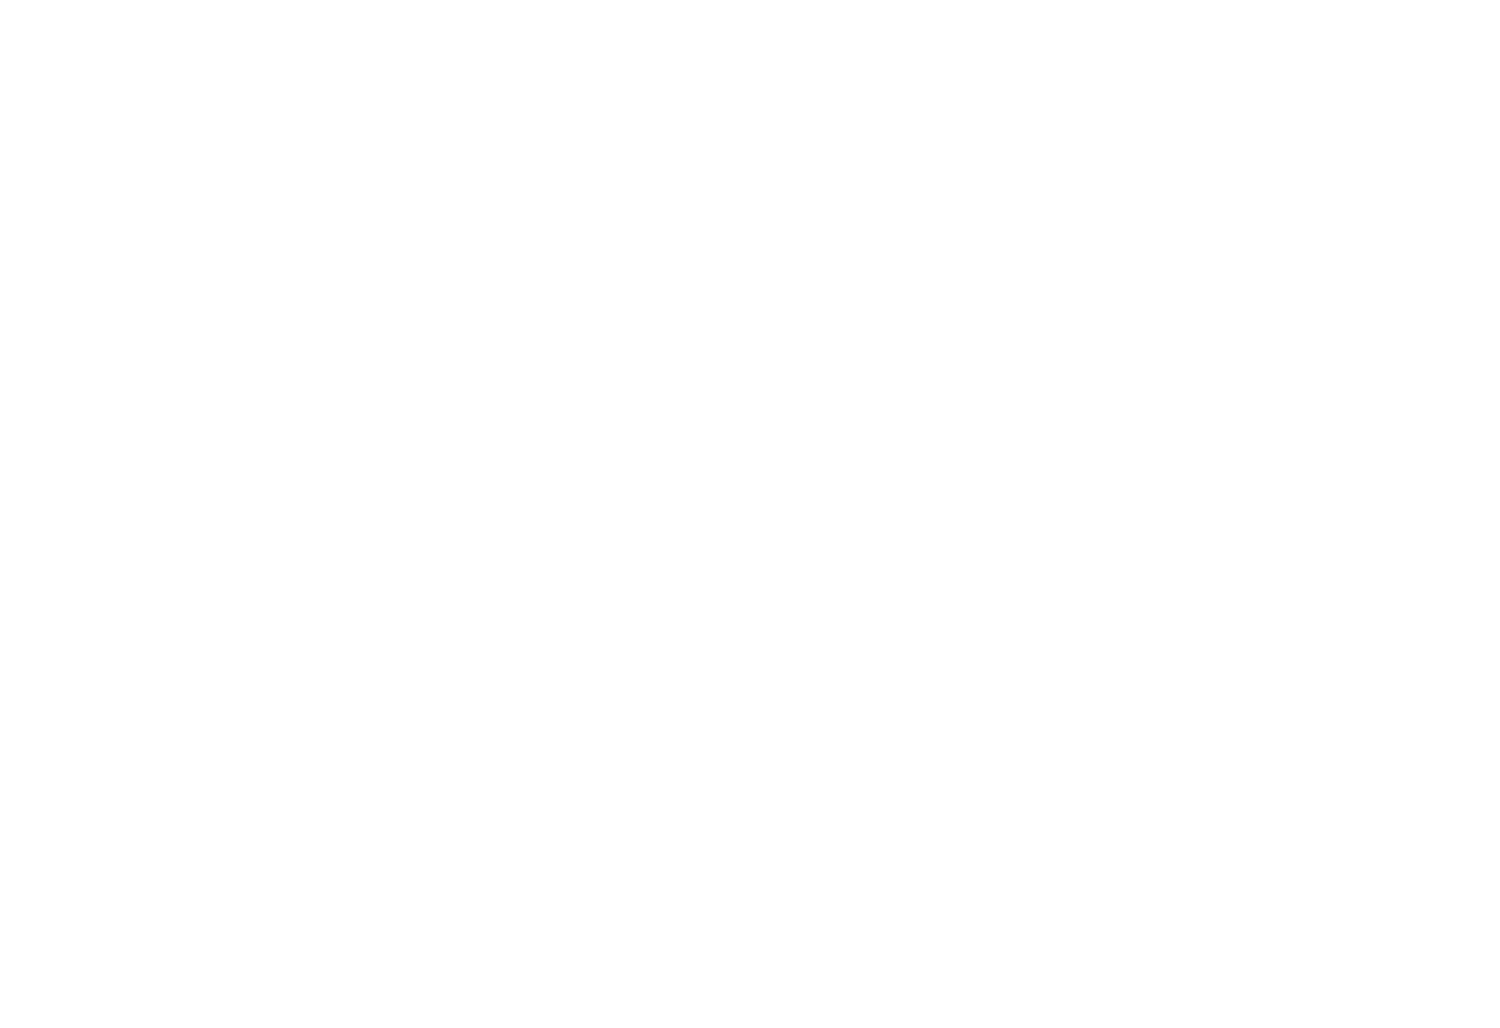 Beyond the Data